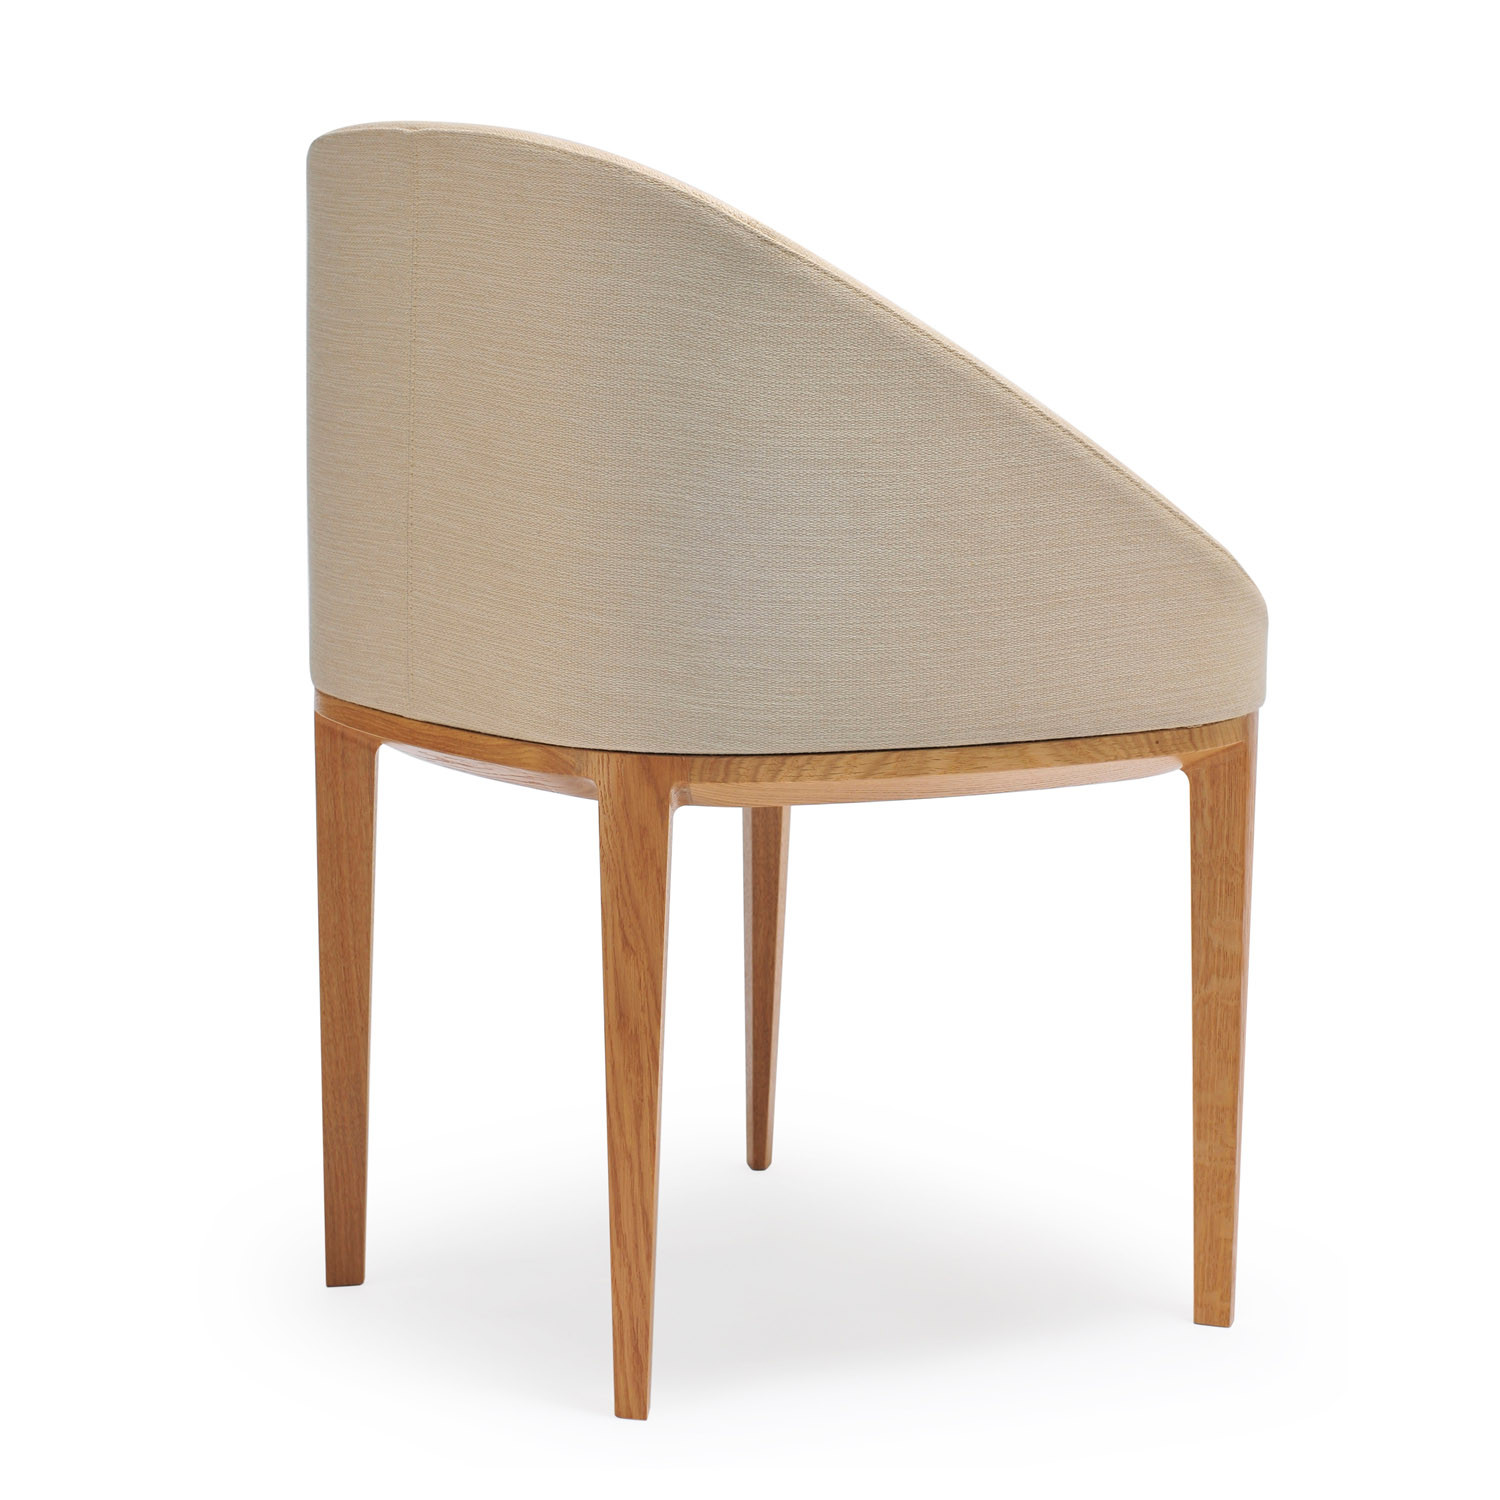 Orlo Chair Rear View